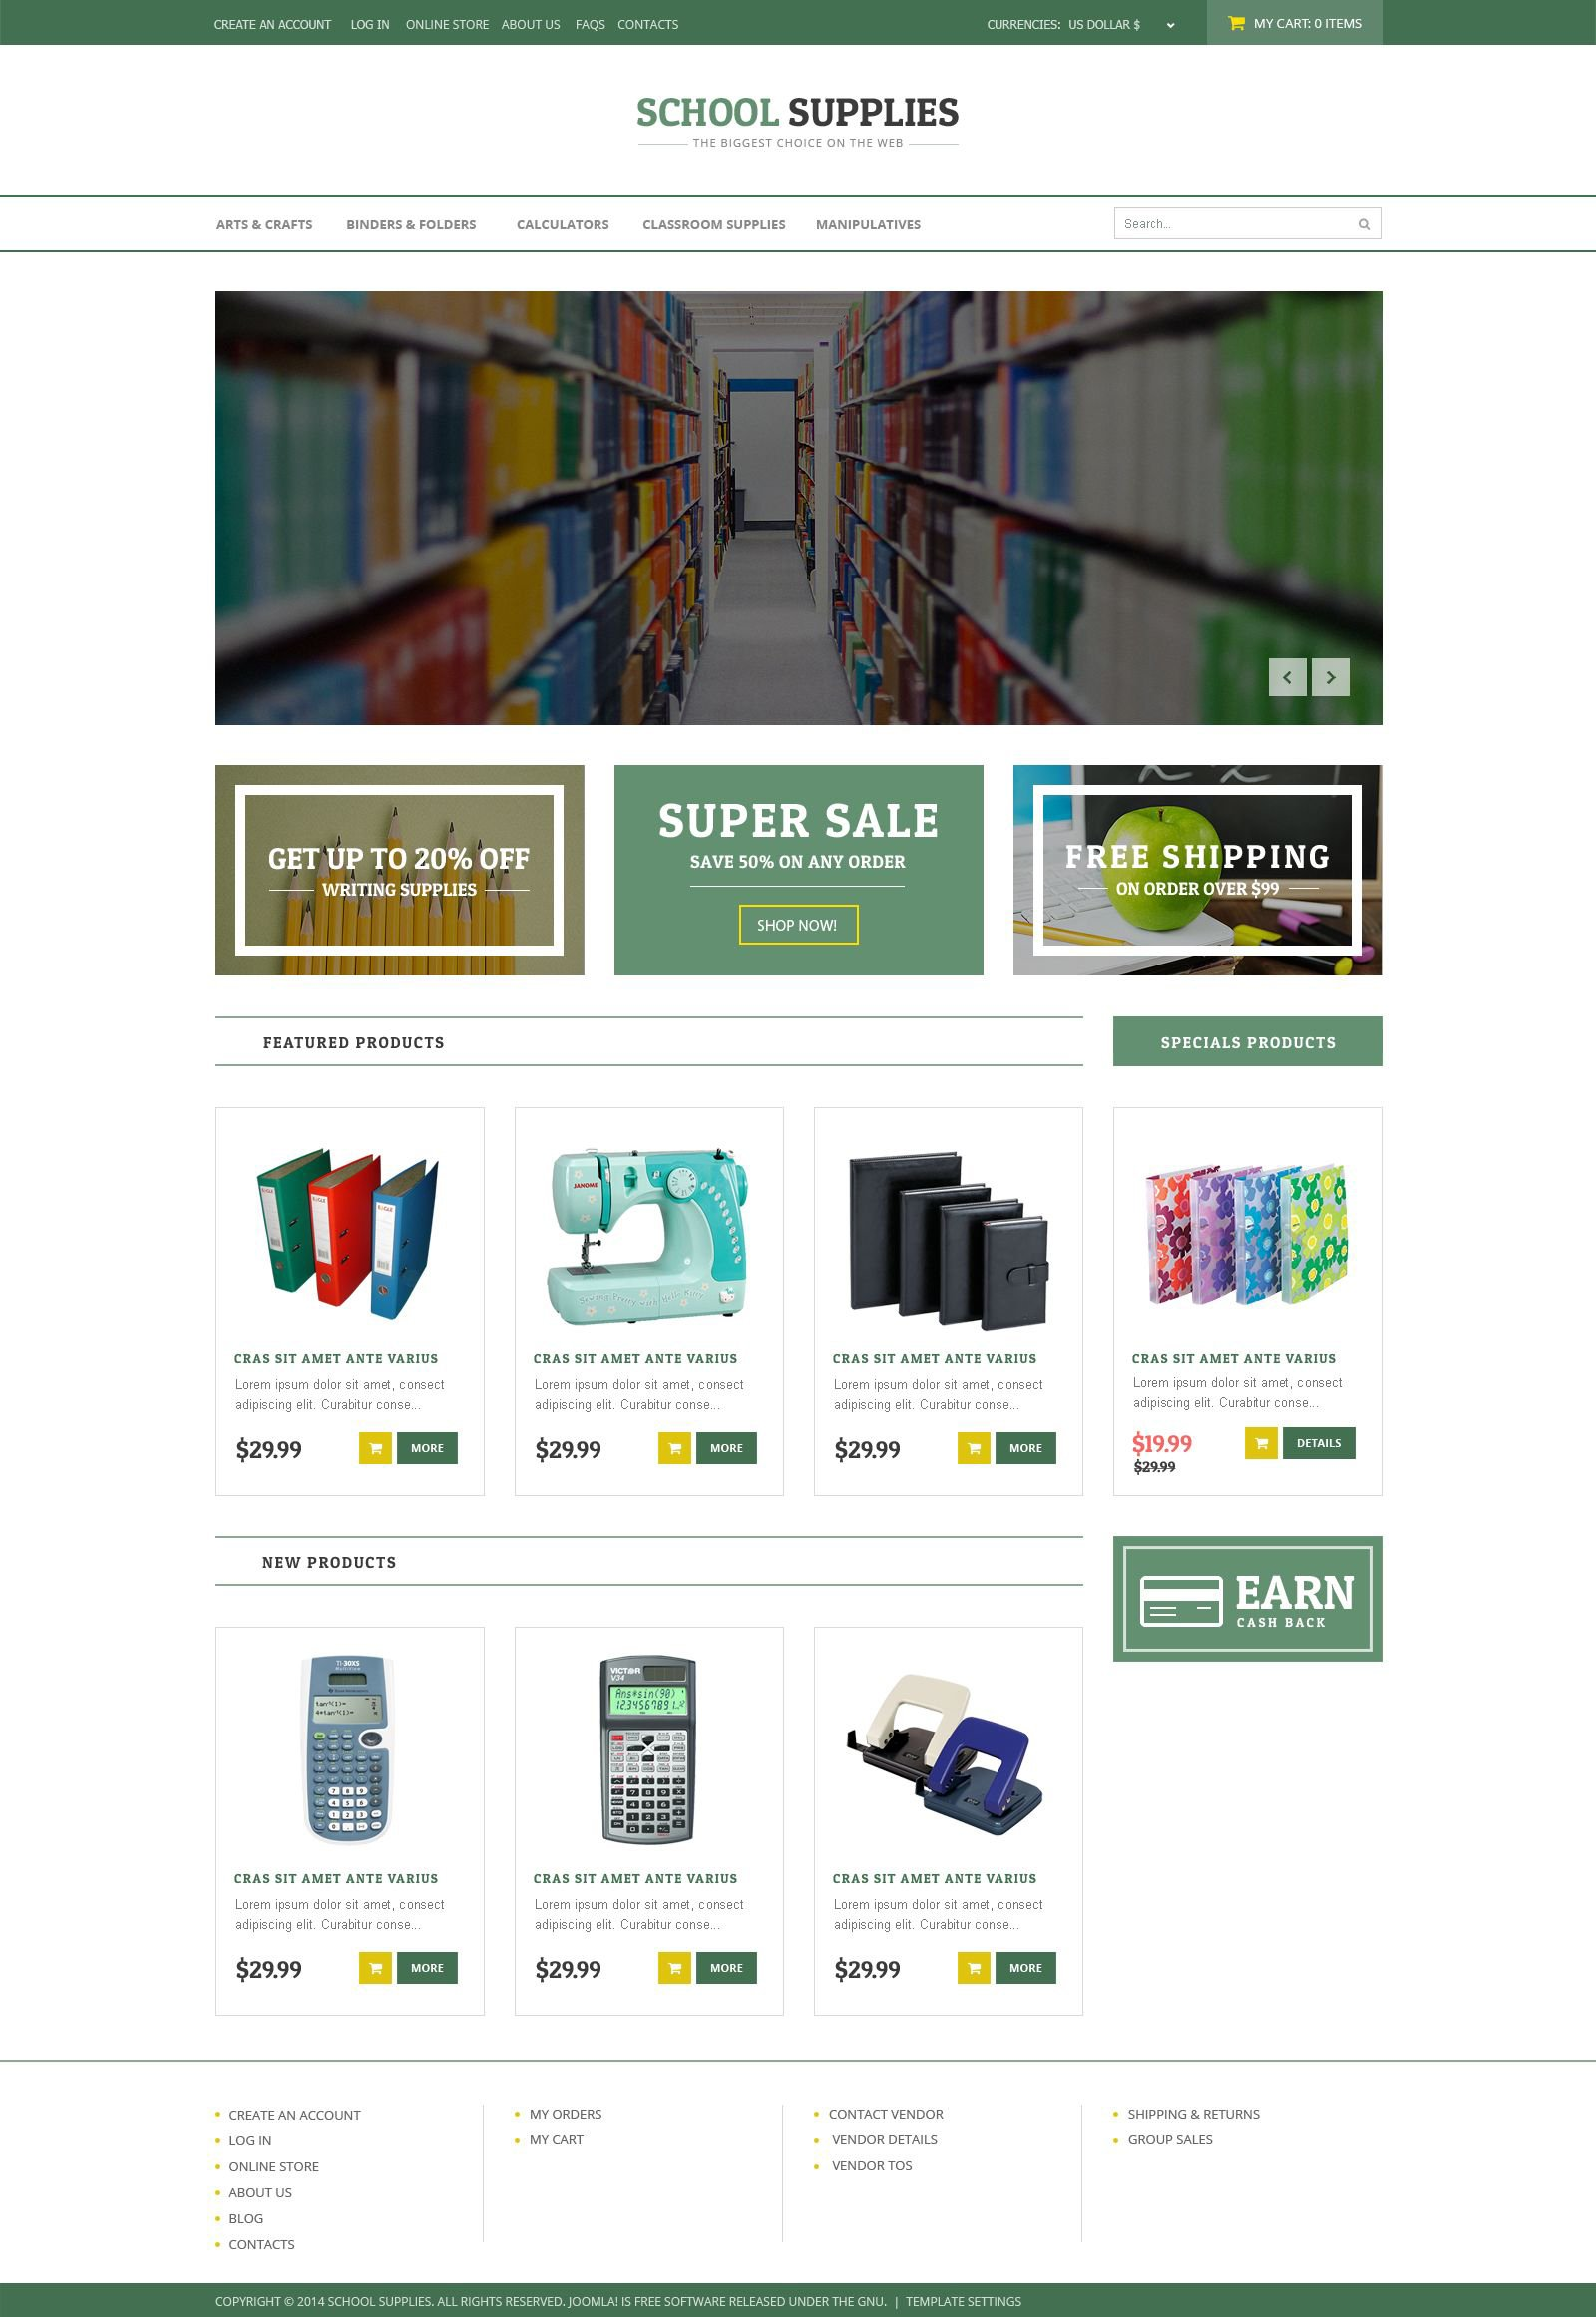 The School Supplies Parent VirtueMart Design 53377, one of the best VirtueMart templates of its kind (education, most popular), also known as School supplies parent VirtueMart template, teacher VirtueMart template, kids VirtueMart template, children school VirtueMart template, aids VirtueMart template, educational supplies school VirtueMart template, supplies VirtueMart template, classroom VirtueMart template, furniture VirtueMart template, decorations VirtueMart template, educational materials VirtueMart template, books VirtueMart template, games VirtueMart template, puzzles VirtueMart template, incentives VirtueMart template, arts VirtueMart template, bulletin VirtueMart template, boards VirtueMart template, literacy VirtueMart template, math VirtueMart template, music VirtueMart template, science VirtueMart template, teaching VirtueMart template, tools VirtueMart template, arts VirtueMart template, crafts and related with School supplies parent, teacher, kids, children school, aids, educational supplies school, supplies, classroom, furniture, decorations, educational materials, books, games, puzzles, incentives, arts, bulletin, boards, literacy, math, music, science, teaching, tools, arts, crafts, etc.